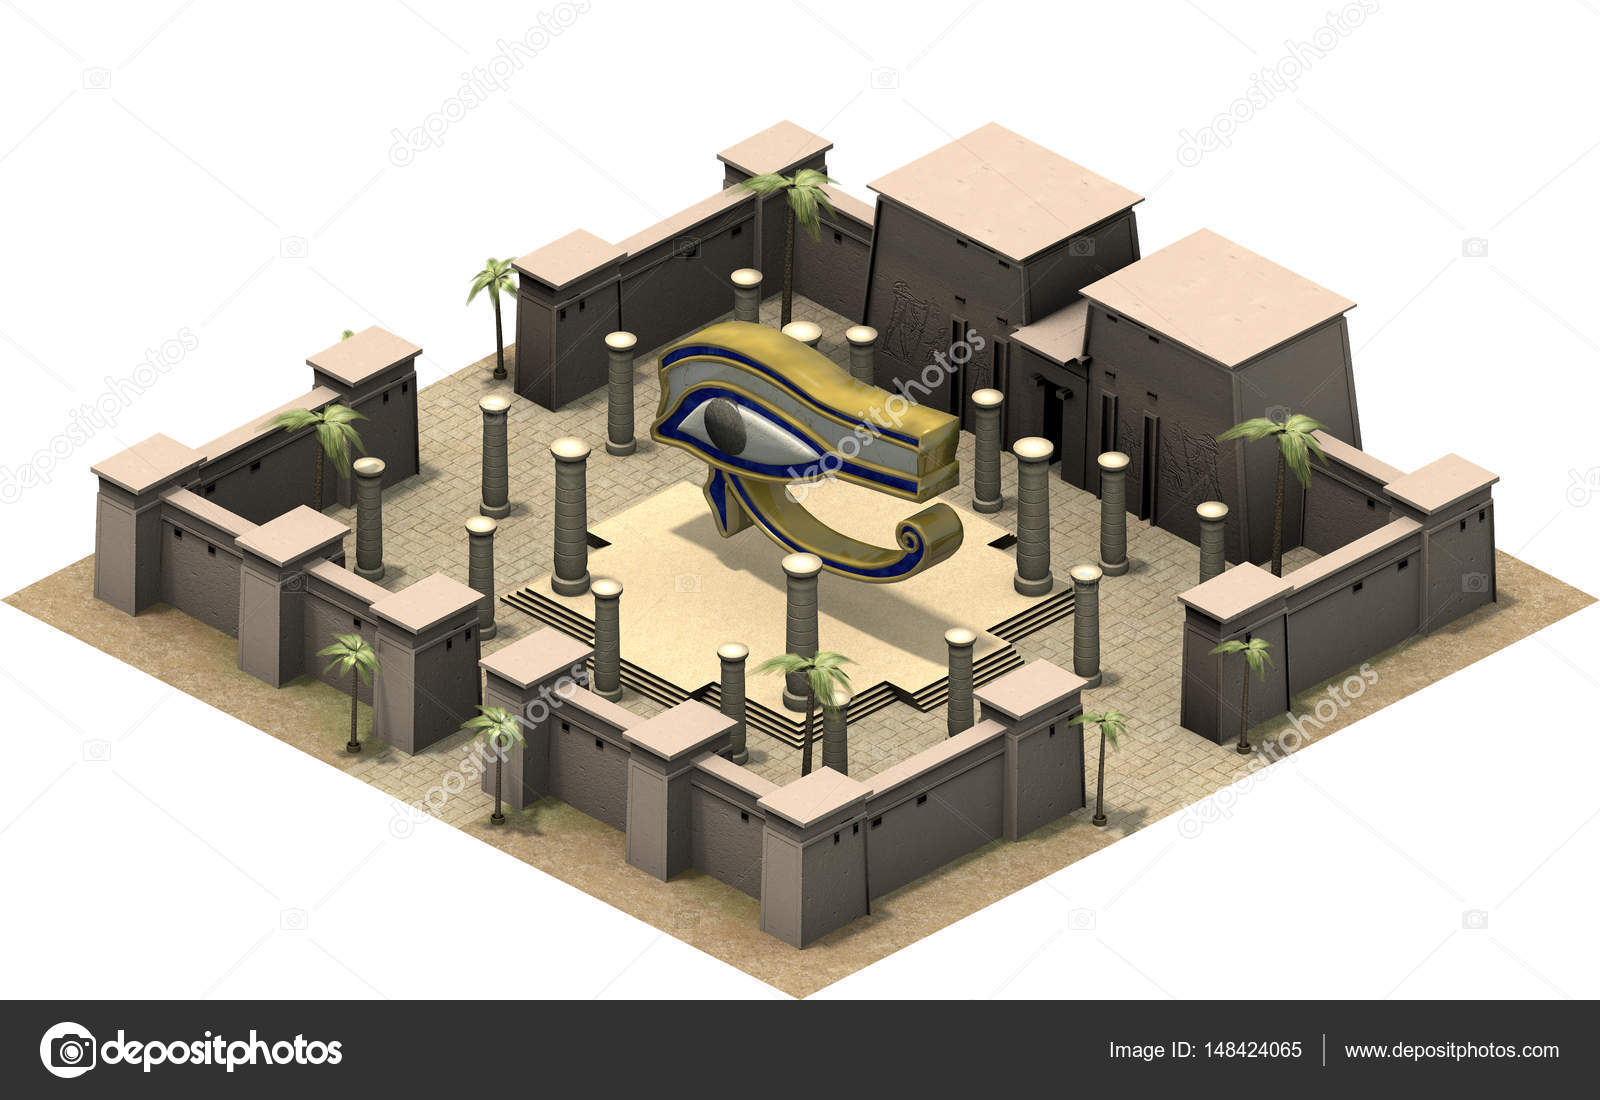 Isometric platform of ancient egypt stock photo fredmantel 3d rendering of isometric platform of ancient egypt illustration of old architecture symbol of eye of god horus and palm trees in dessert ccuart Choice Image